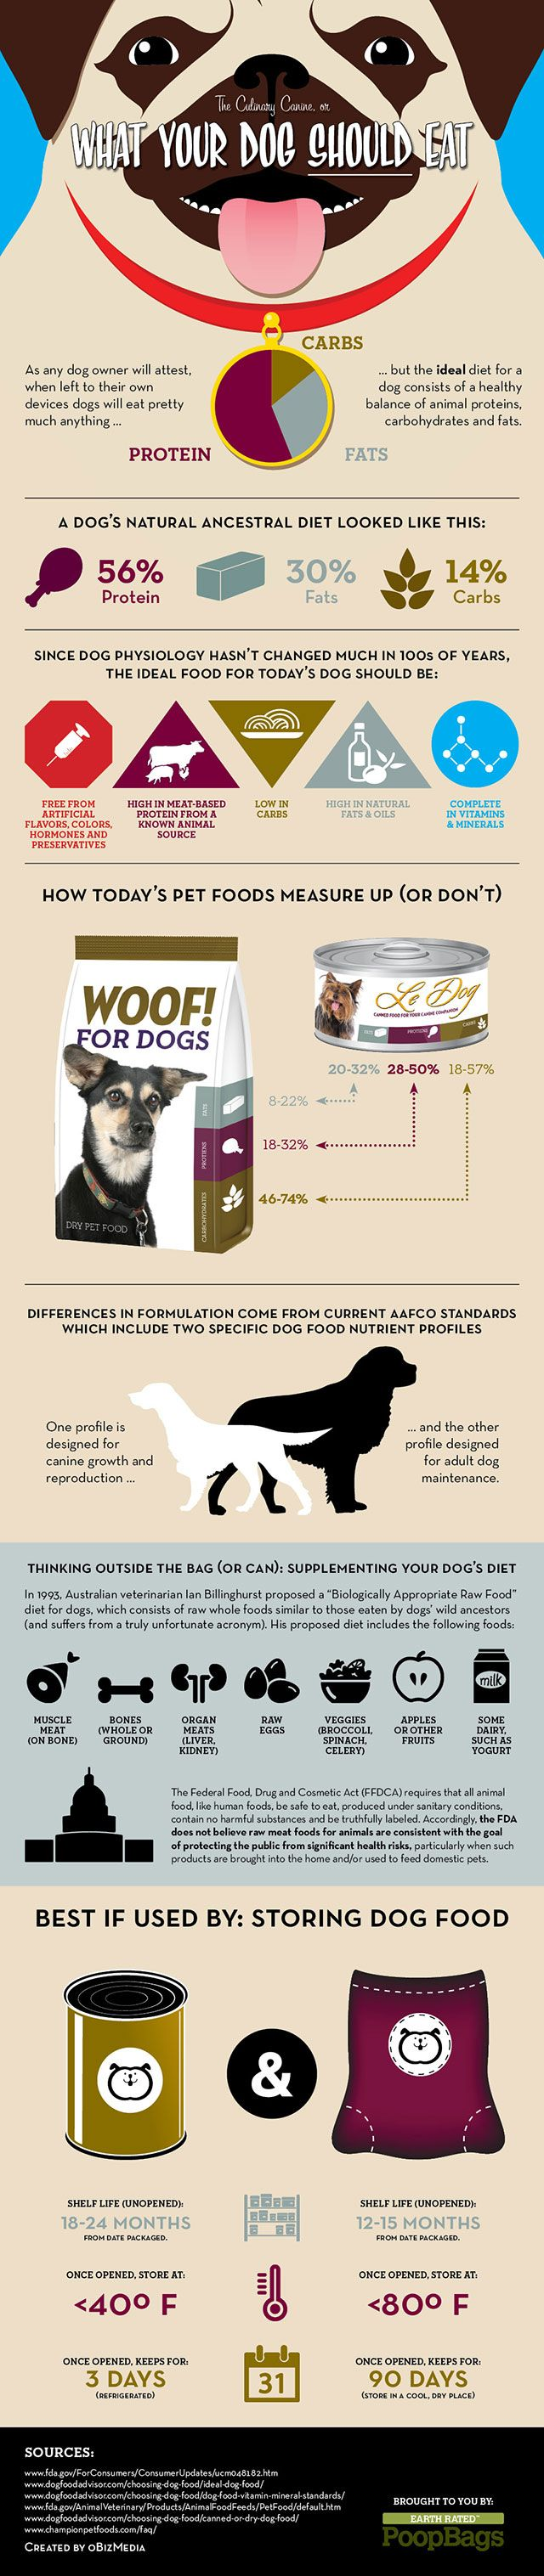 INFOGRAPHIC: WHAT'S REALLY IN YOUR PET'S FOOD?    Your dog is like a member of your family, but do you really know what foods are best for him to eat?